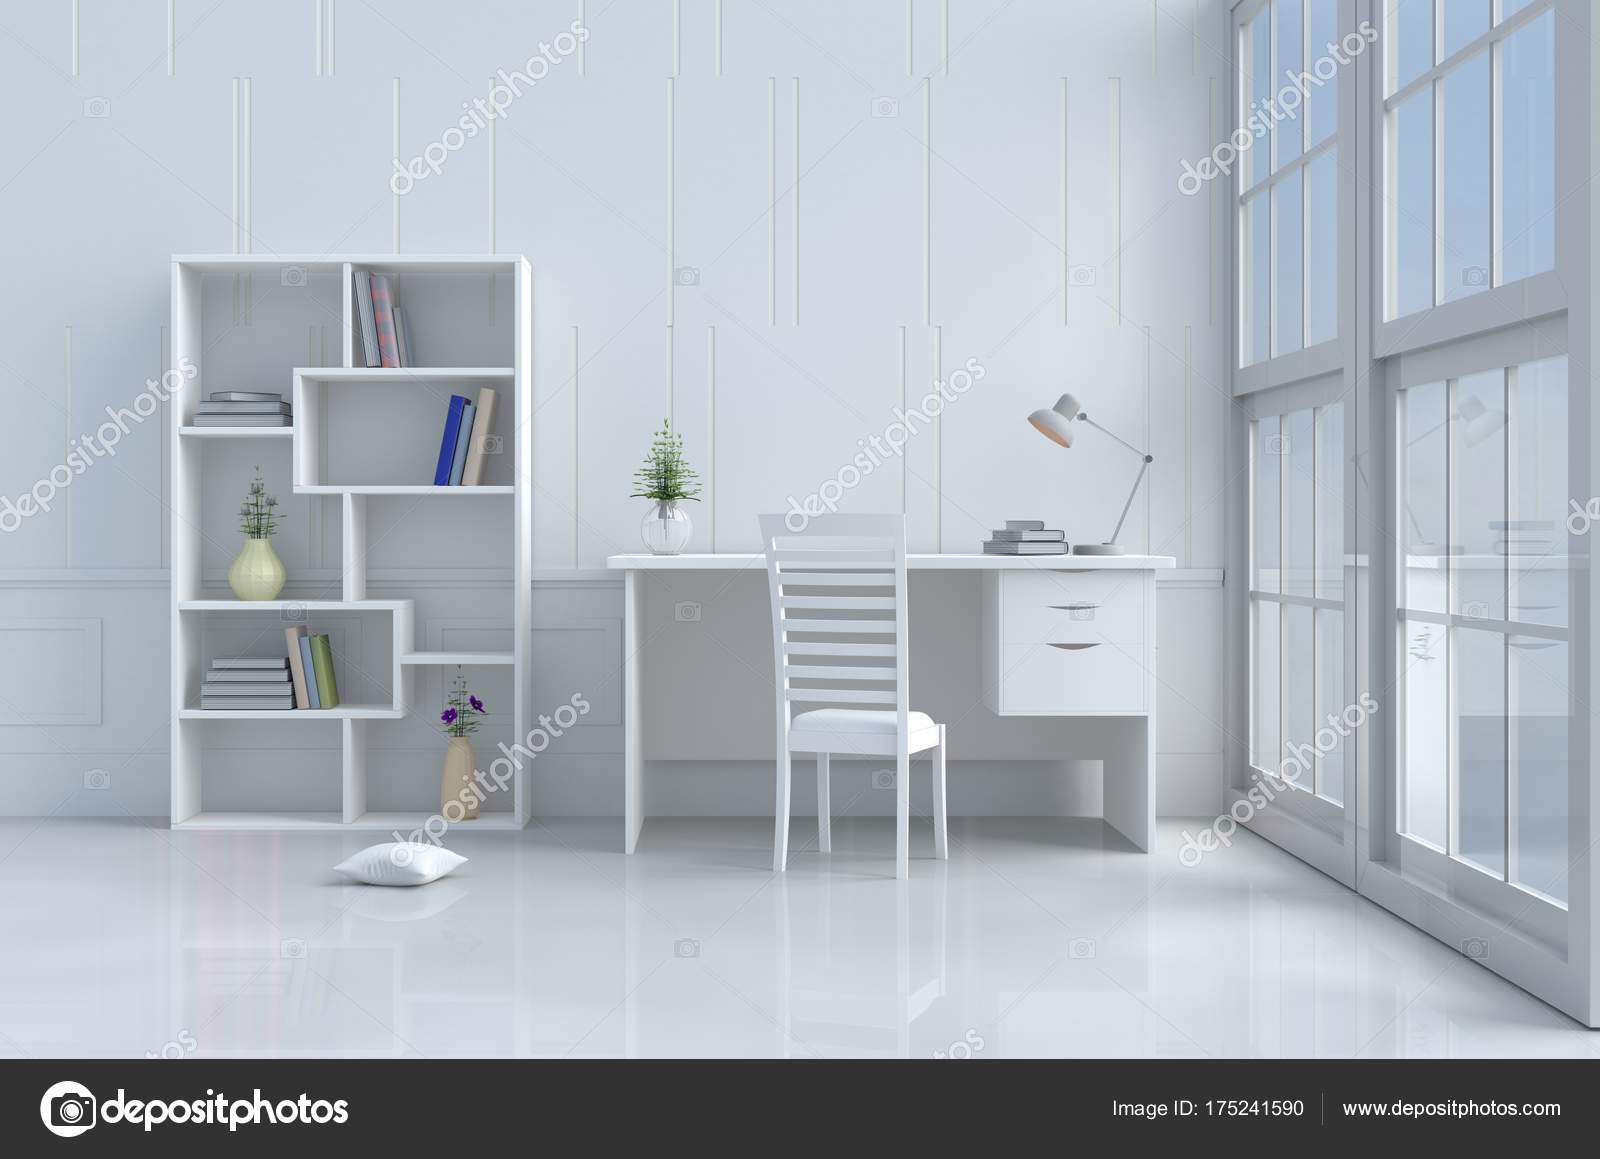 White Reading Room Decorated With Tree In Vase,pillow,white Chair And  Desk,window,sky,lamp,bookcase,flower,book.White Wall It Is Pattern, The Sun  Shines ...